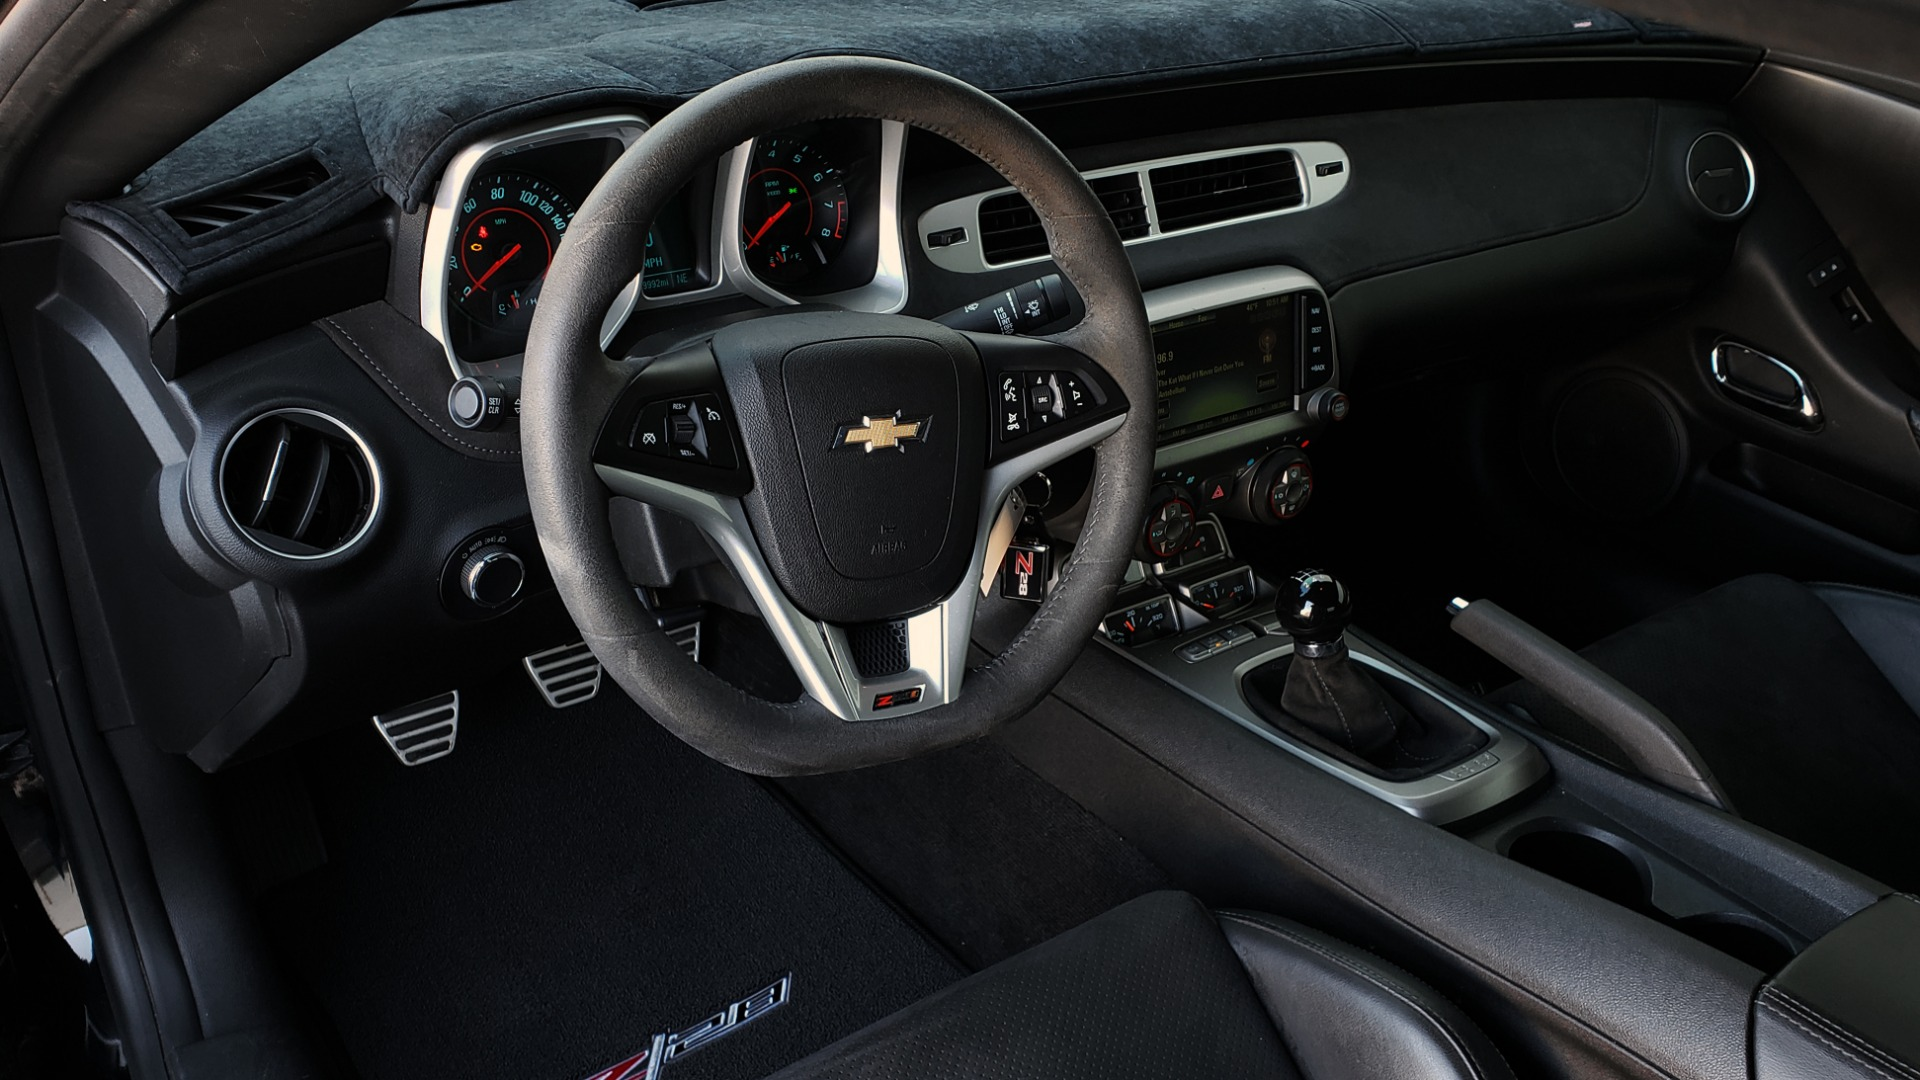 Used 2014 Chevrolet CAMARO Z/28 / 427 7.0L V8 505HP / RADIO / AIR CONDITIONING for sale Sold at Formula Imports in Charlotte NC 28227 54